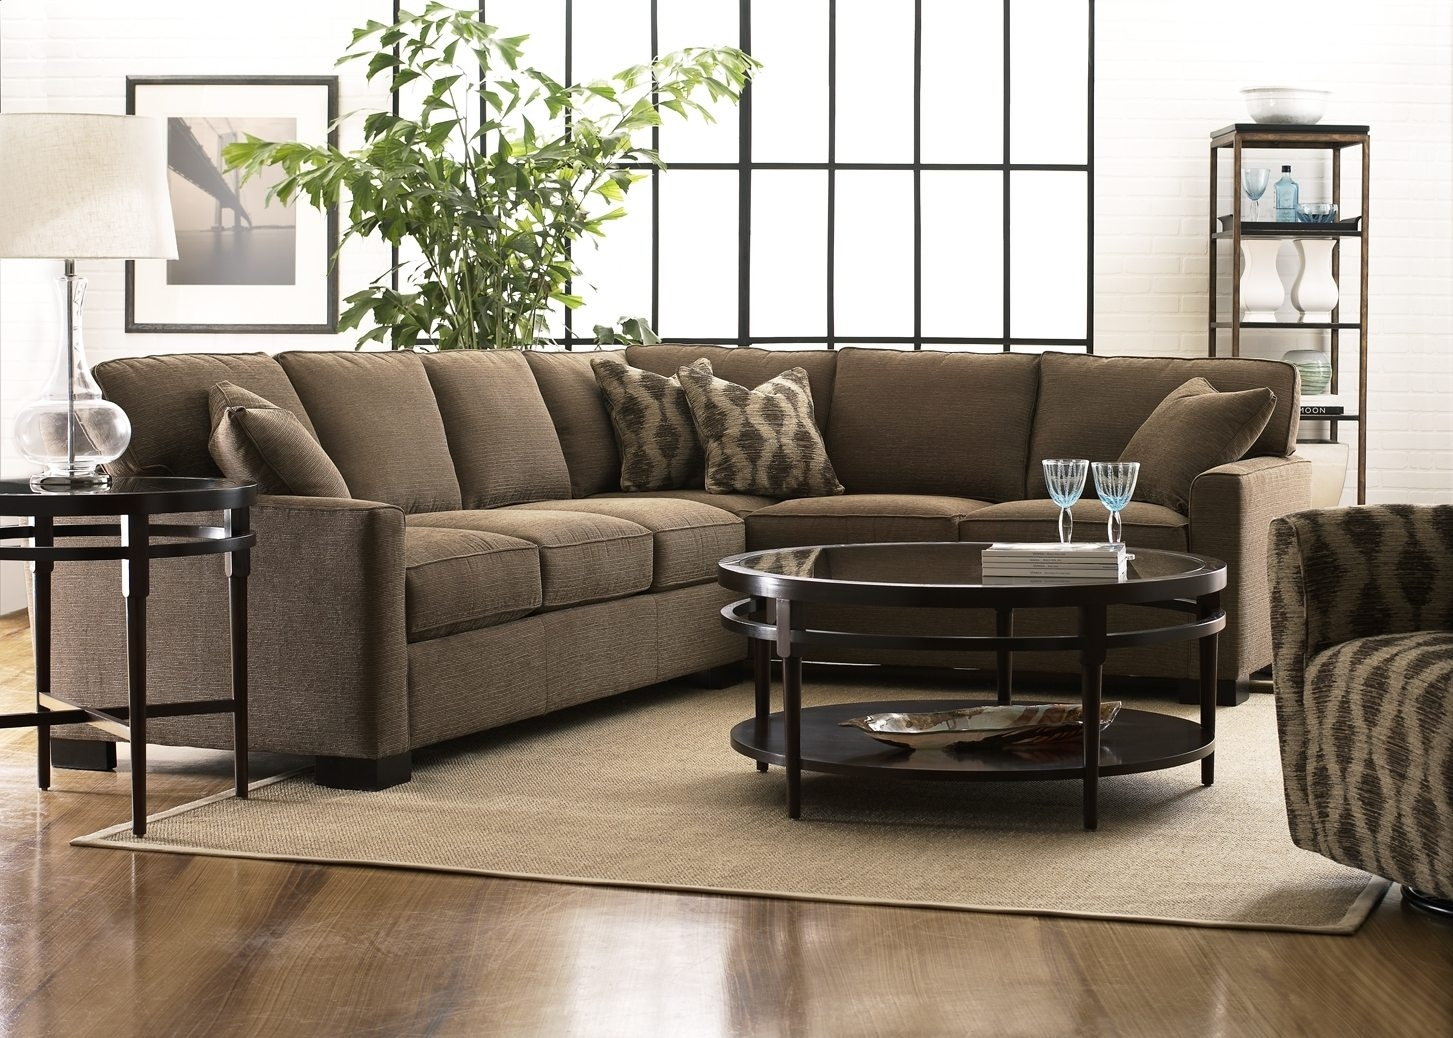 Sectional Sofas Edmonton Hotelsbacau Pertaining To Closeout Sectional Sofas (View 4 of 15)